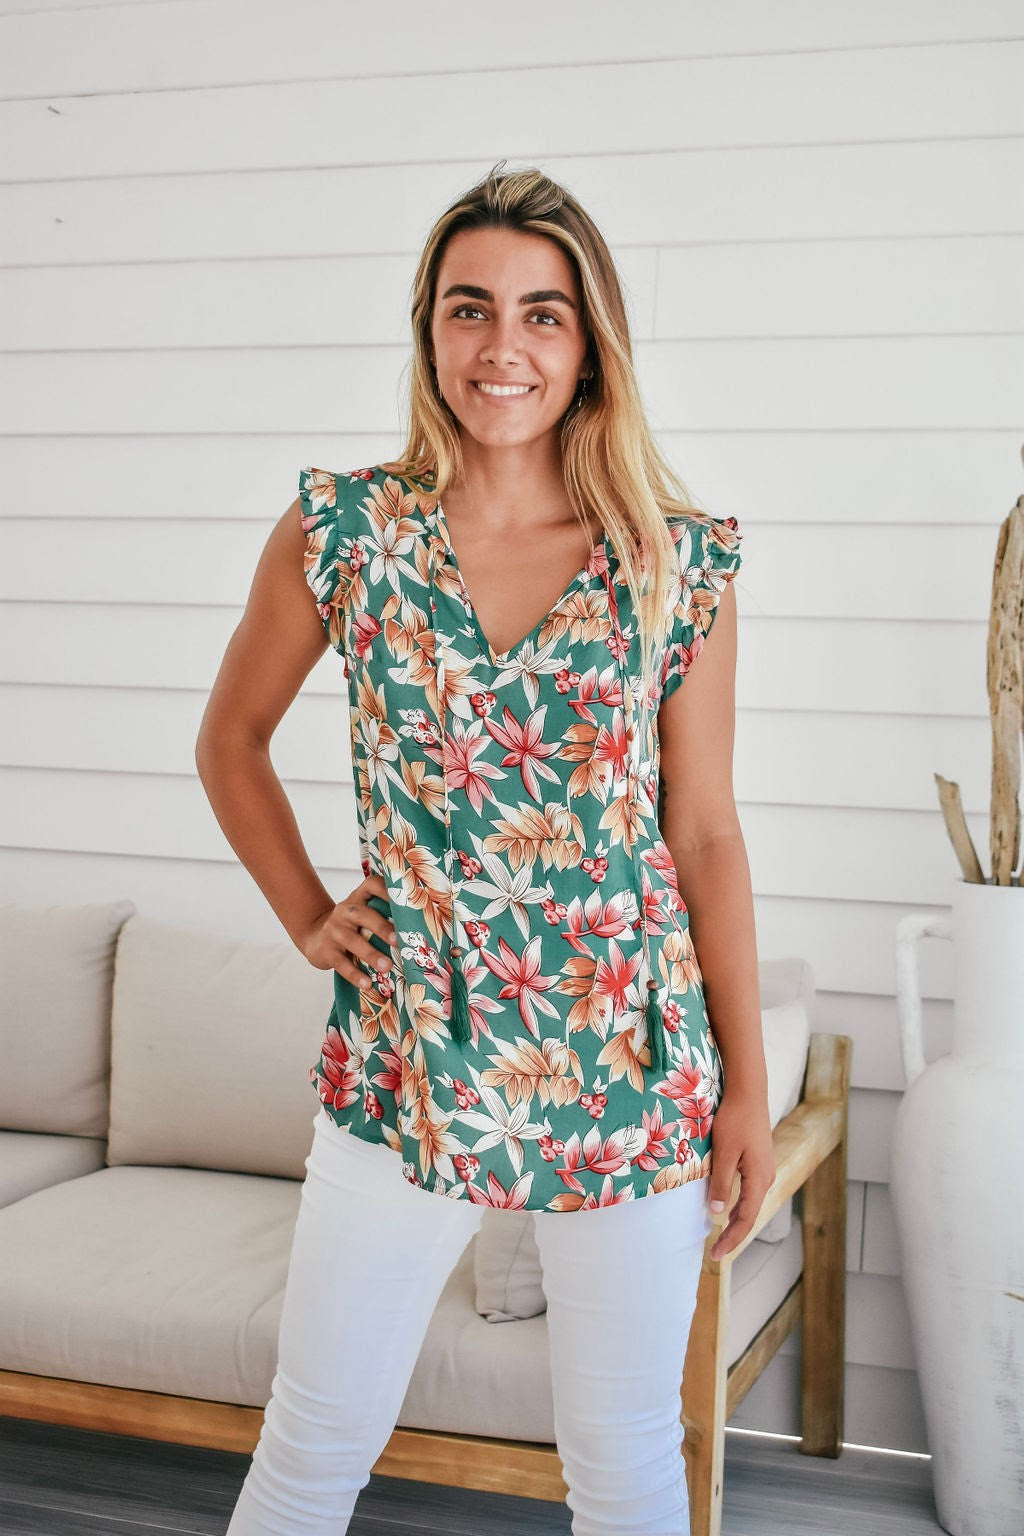 Sanctum Dark Mint Floral Top